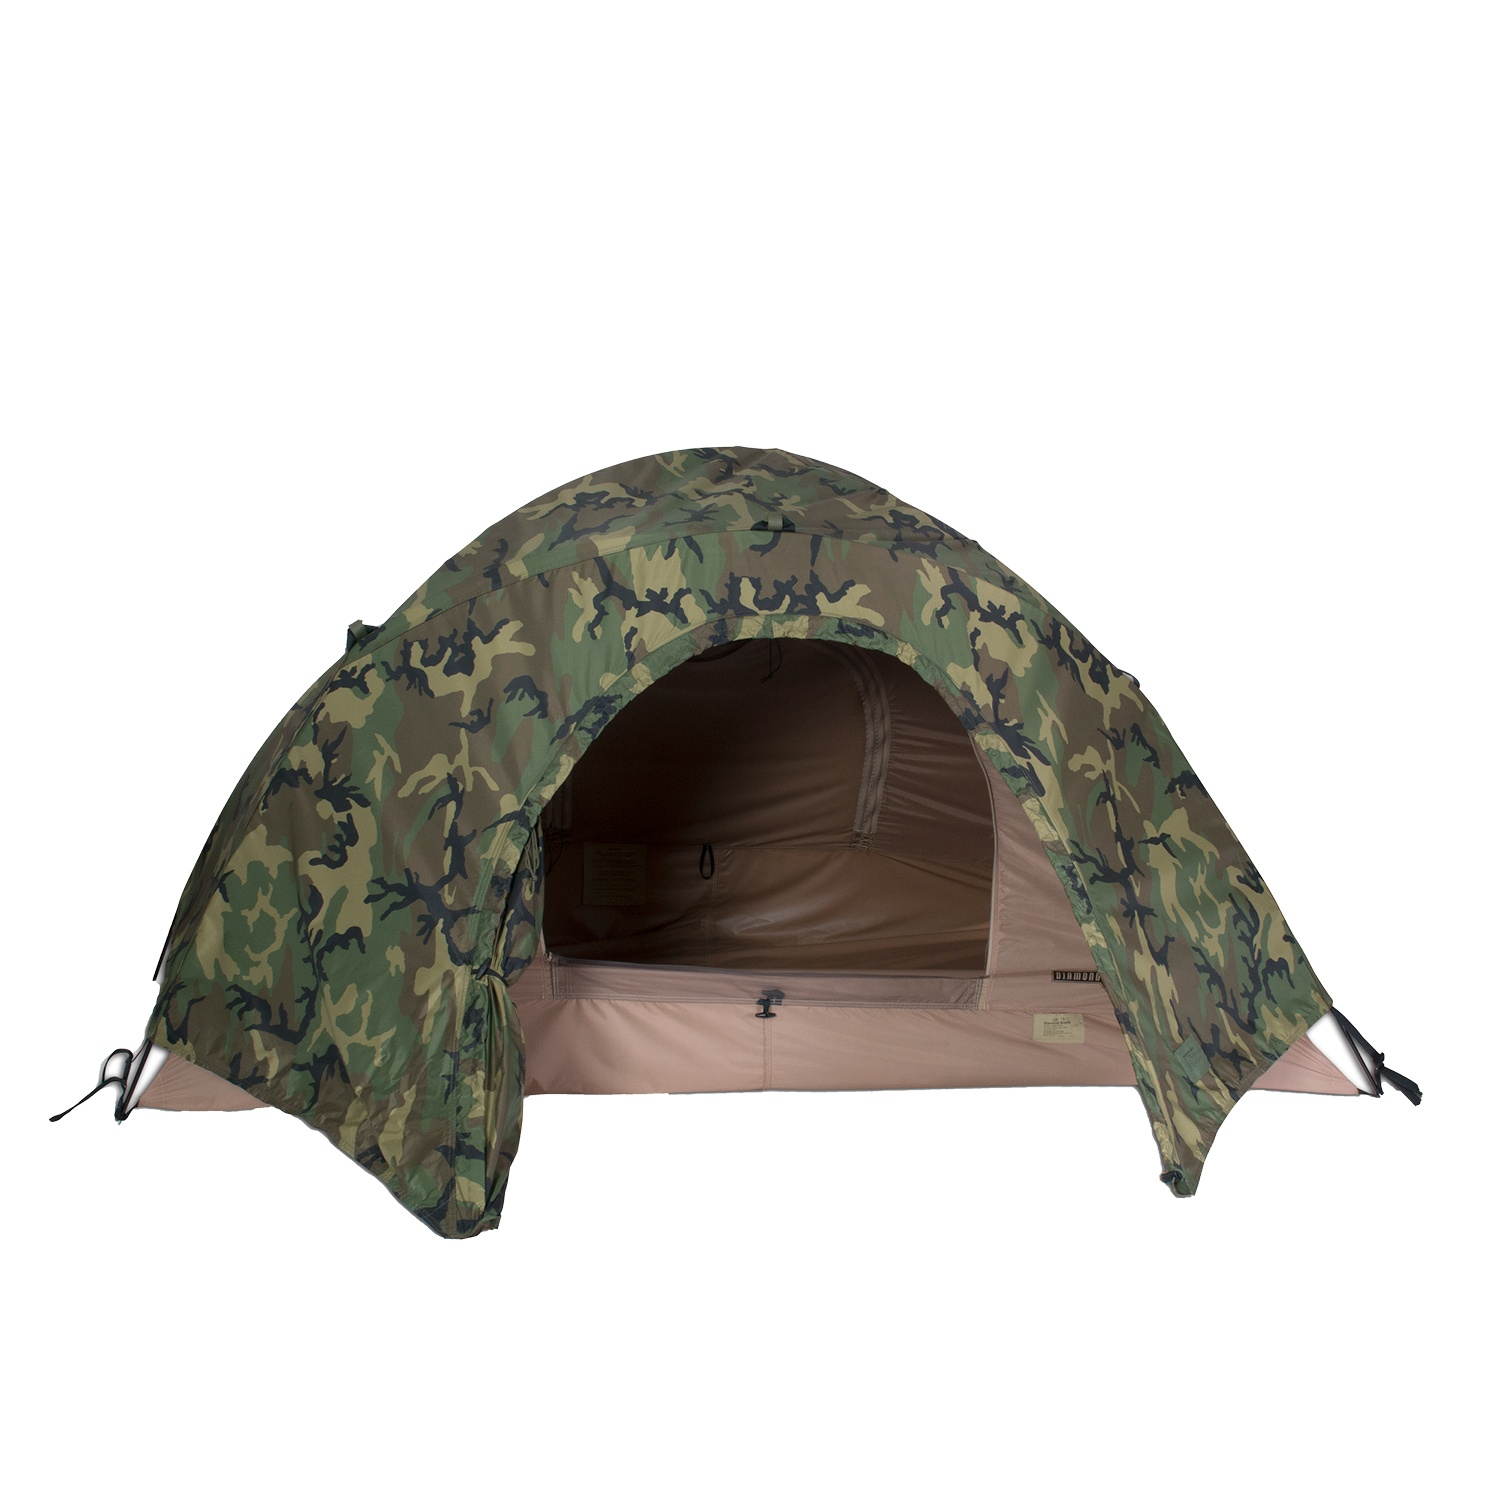 Combat II tent with fly